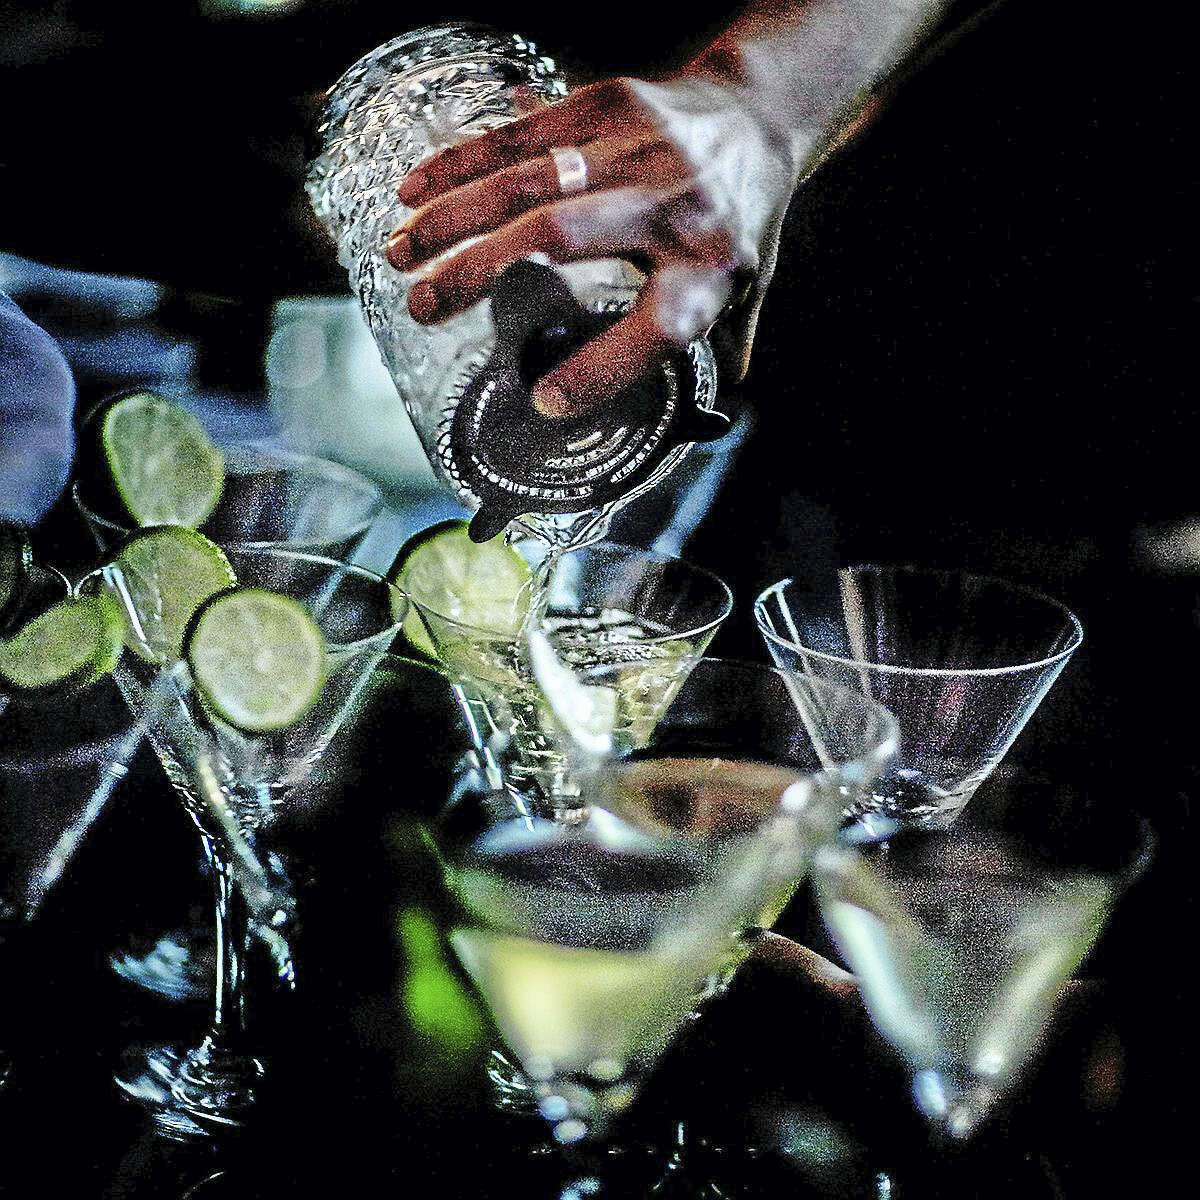 Drinks with lime will be poured at GinFest.